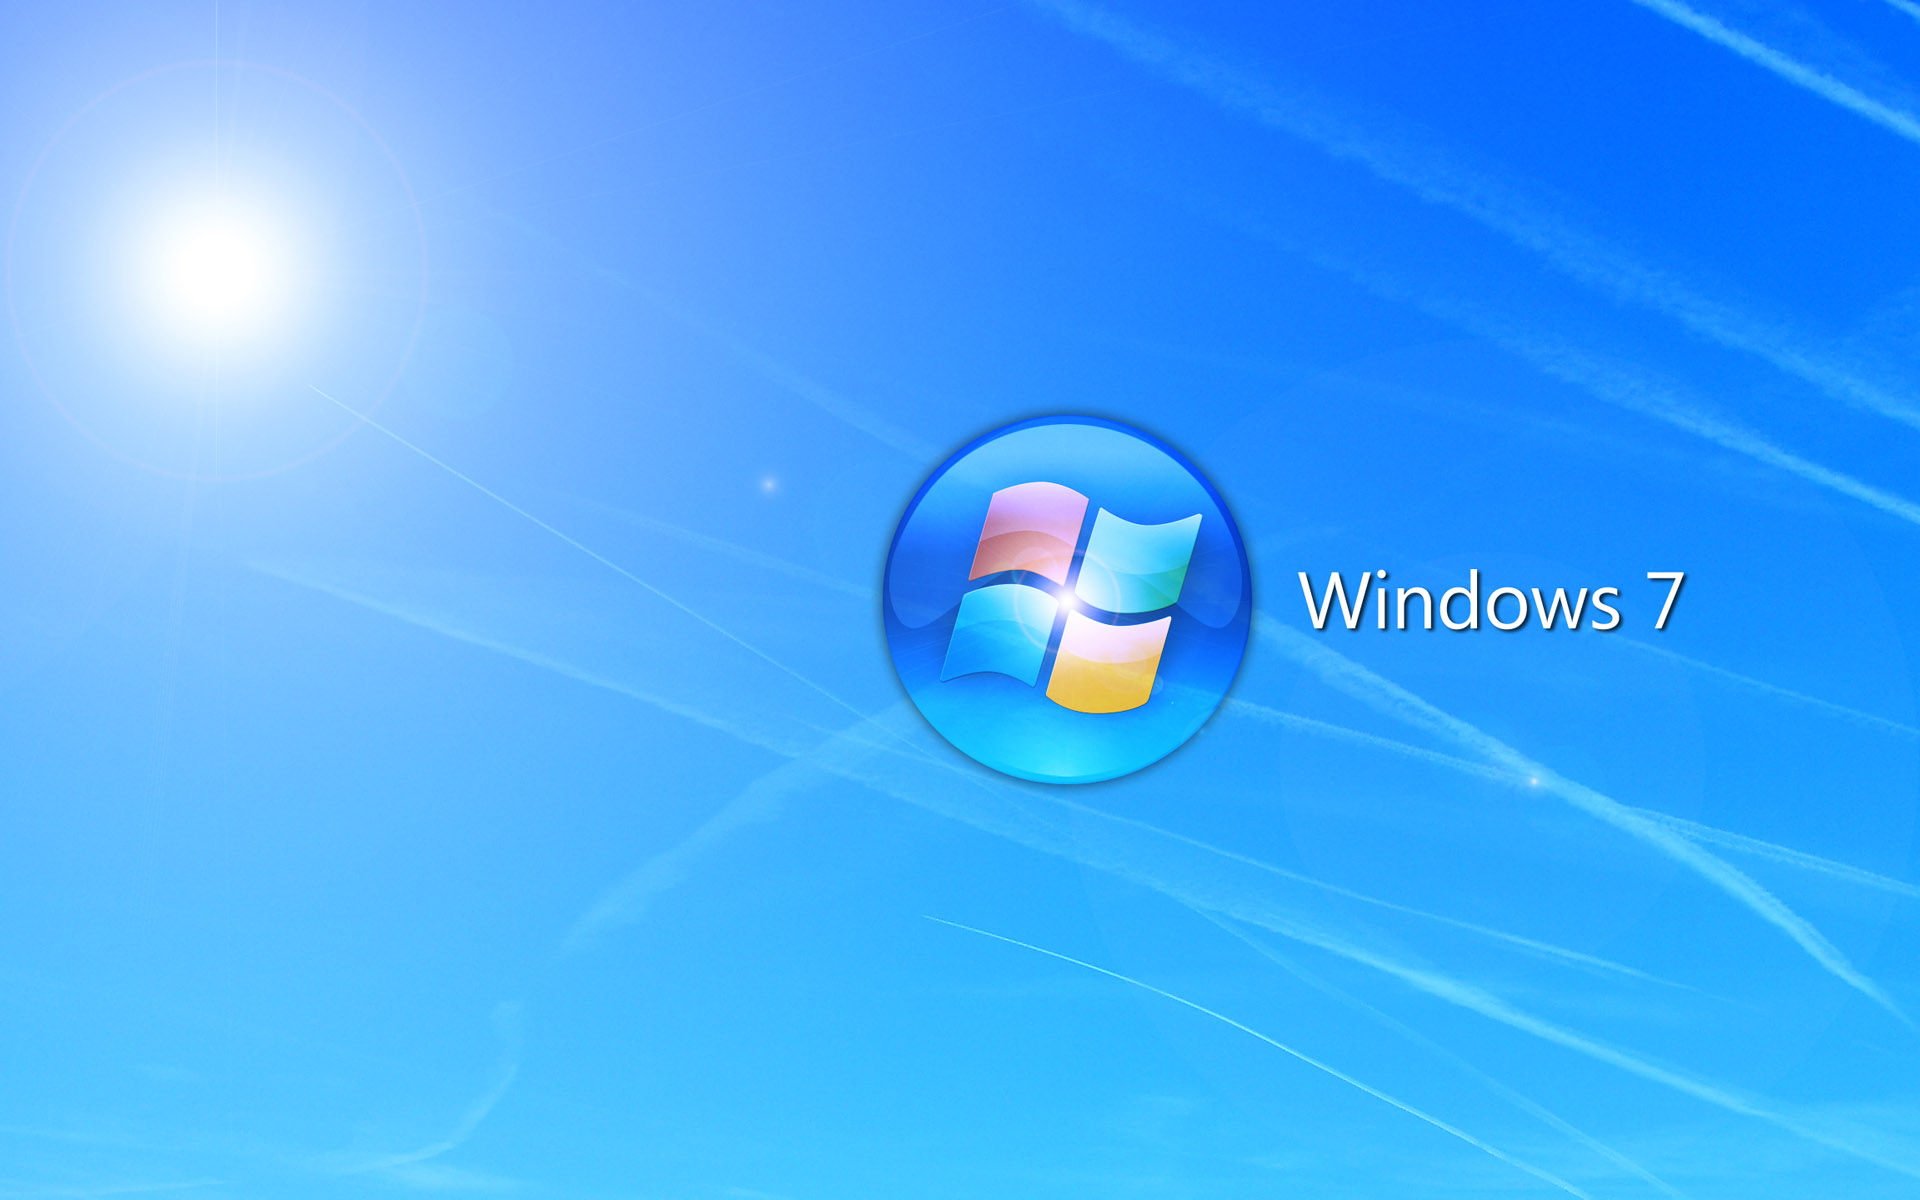 Fine Windows 7 Pic In High Quality